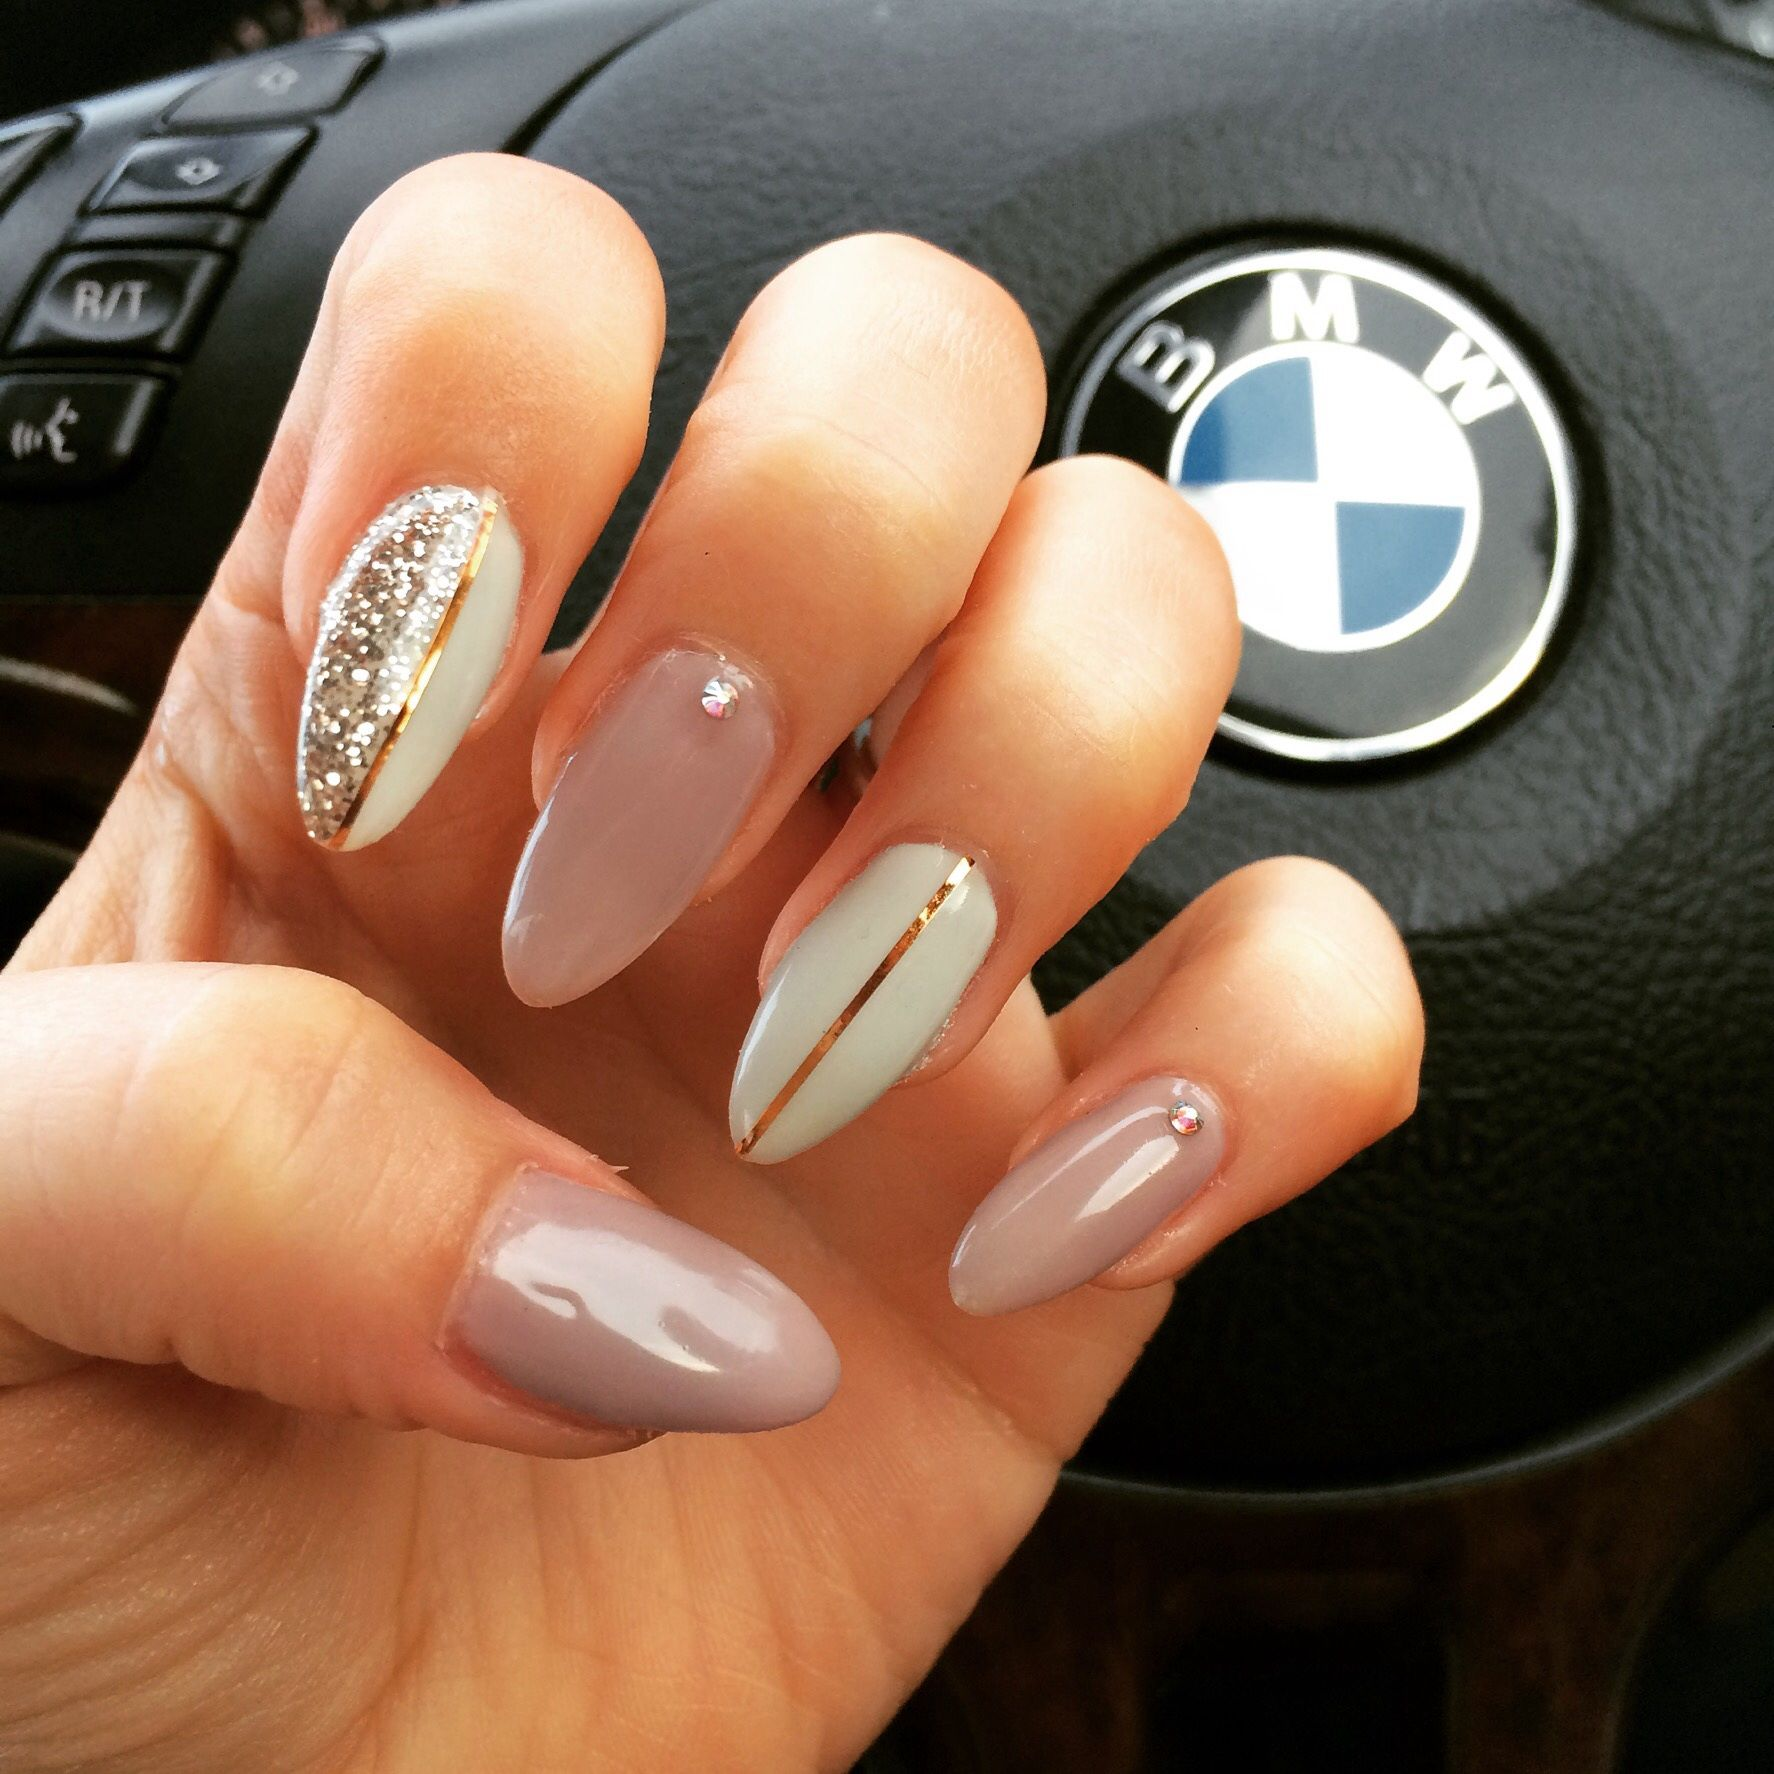 My Fav So Far Stiletto Style Gel Extensions In Beige And Off White Rose Gold Lines Swarovski Gems Nudes Nail Art